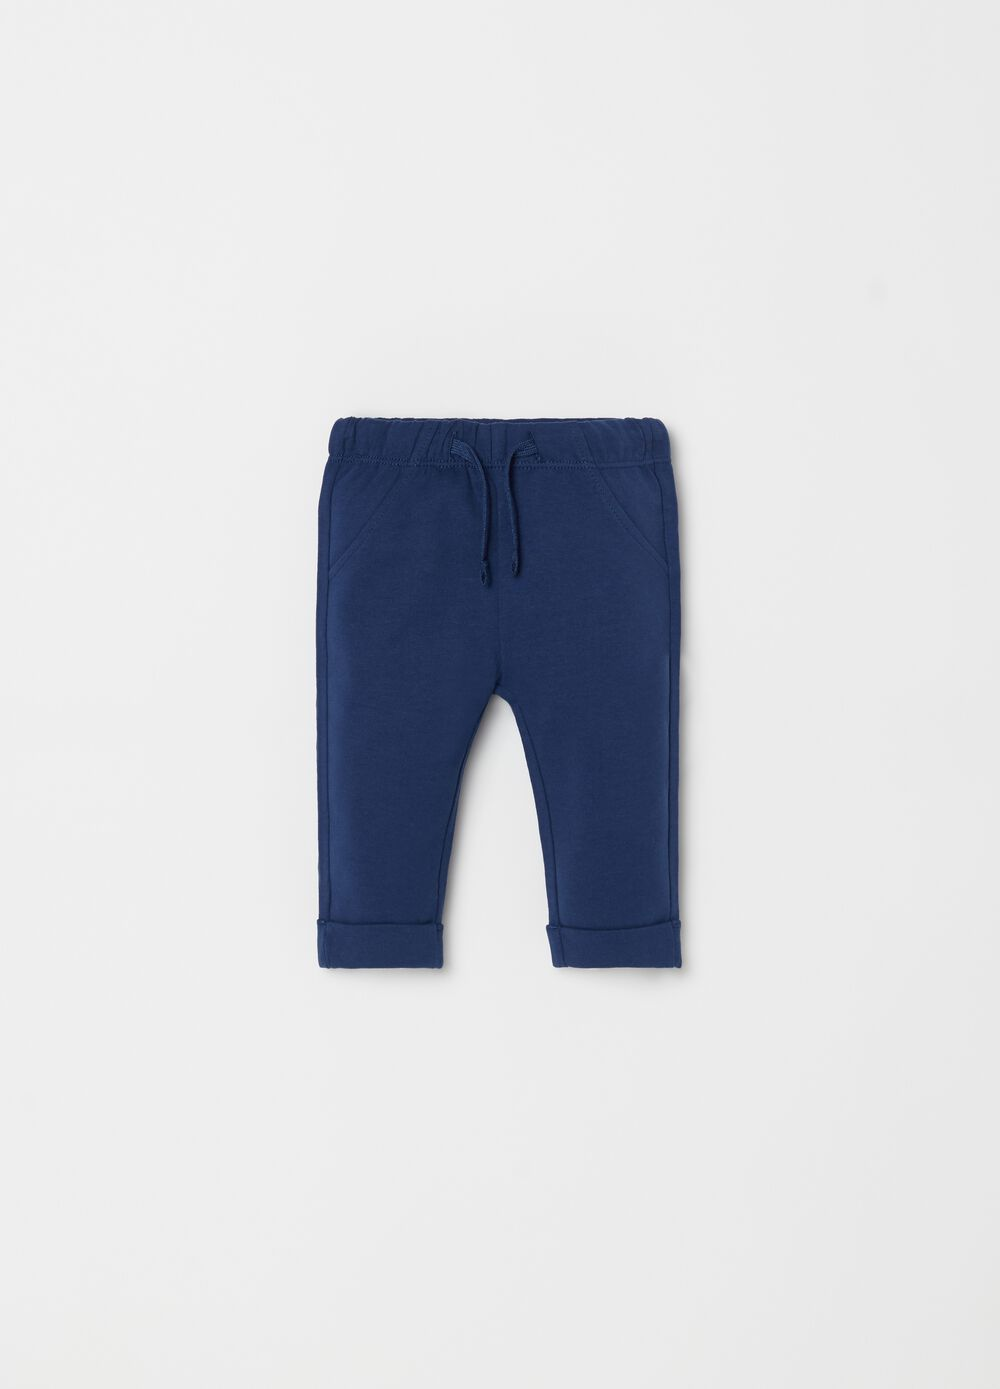 Biocotton fleece trousers with drawstring